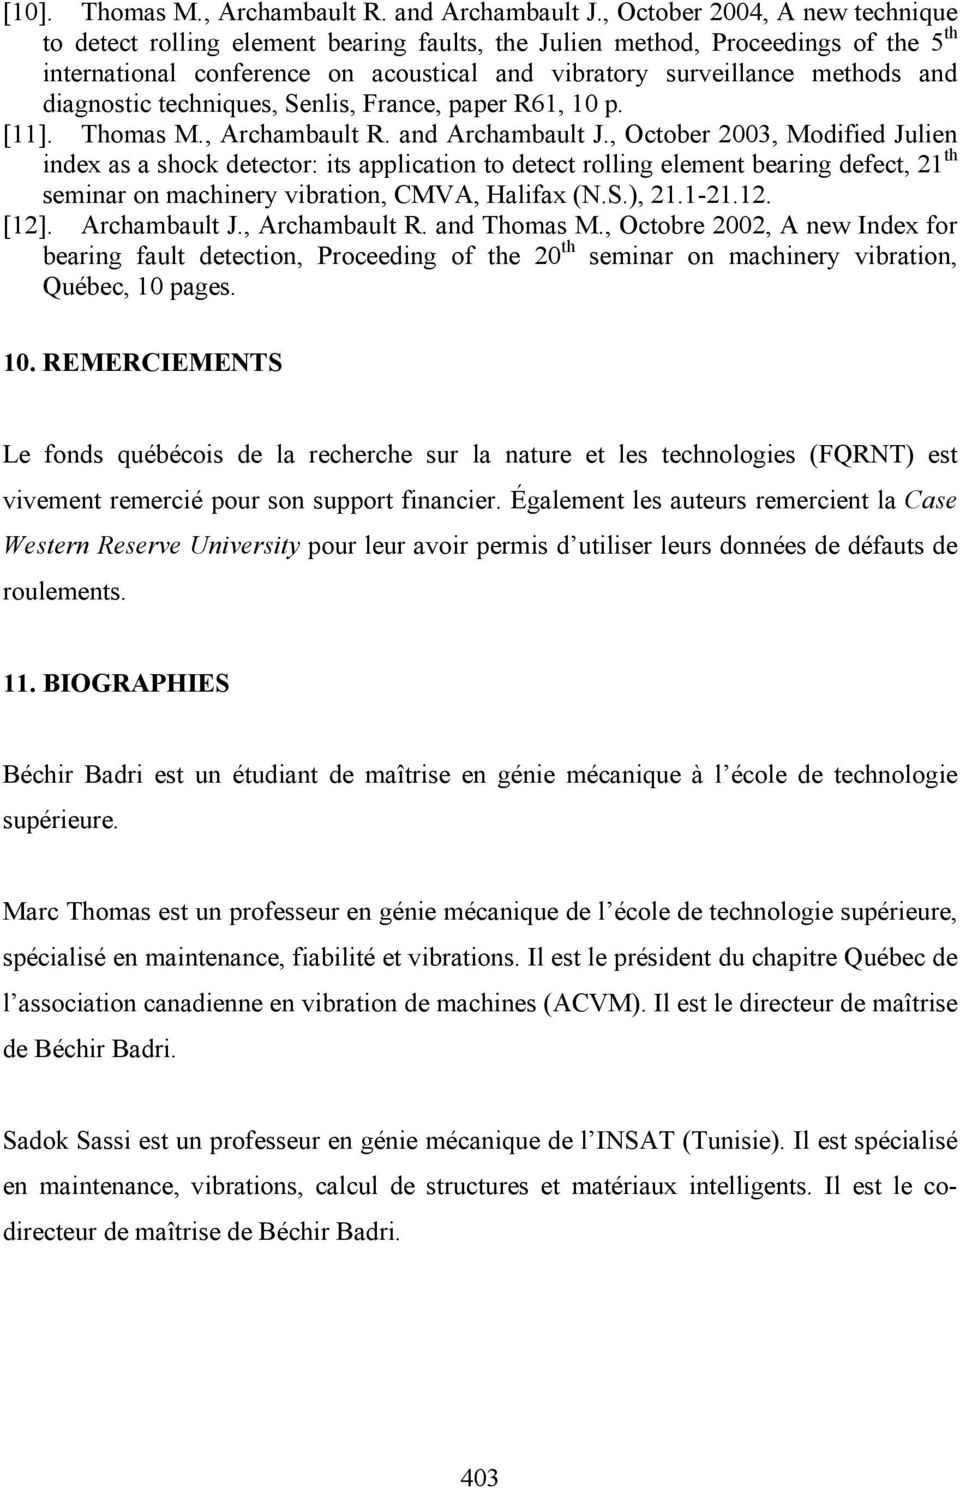 diagnostic techniques, Senlis, France, paper R61, 10 p. [11]. Thomas M., Archambault R. and Archambault J.